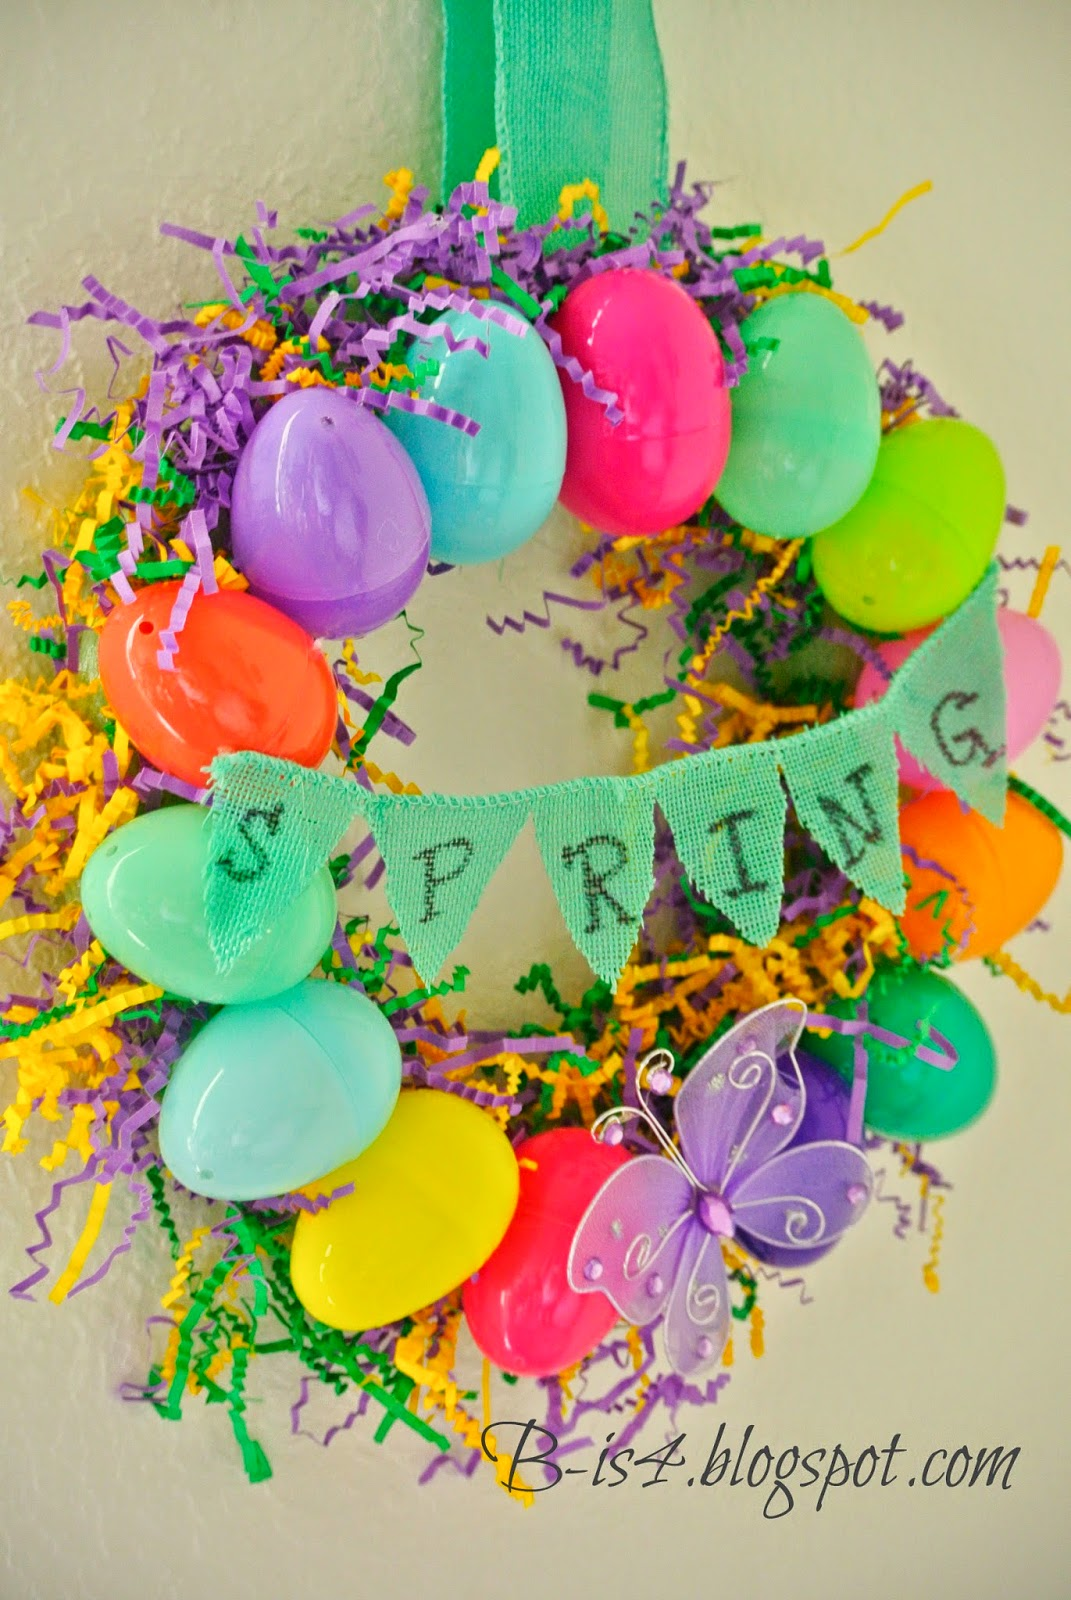 Best B Is 4 Diy Easter Egg Spring Wreath This Month